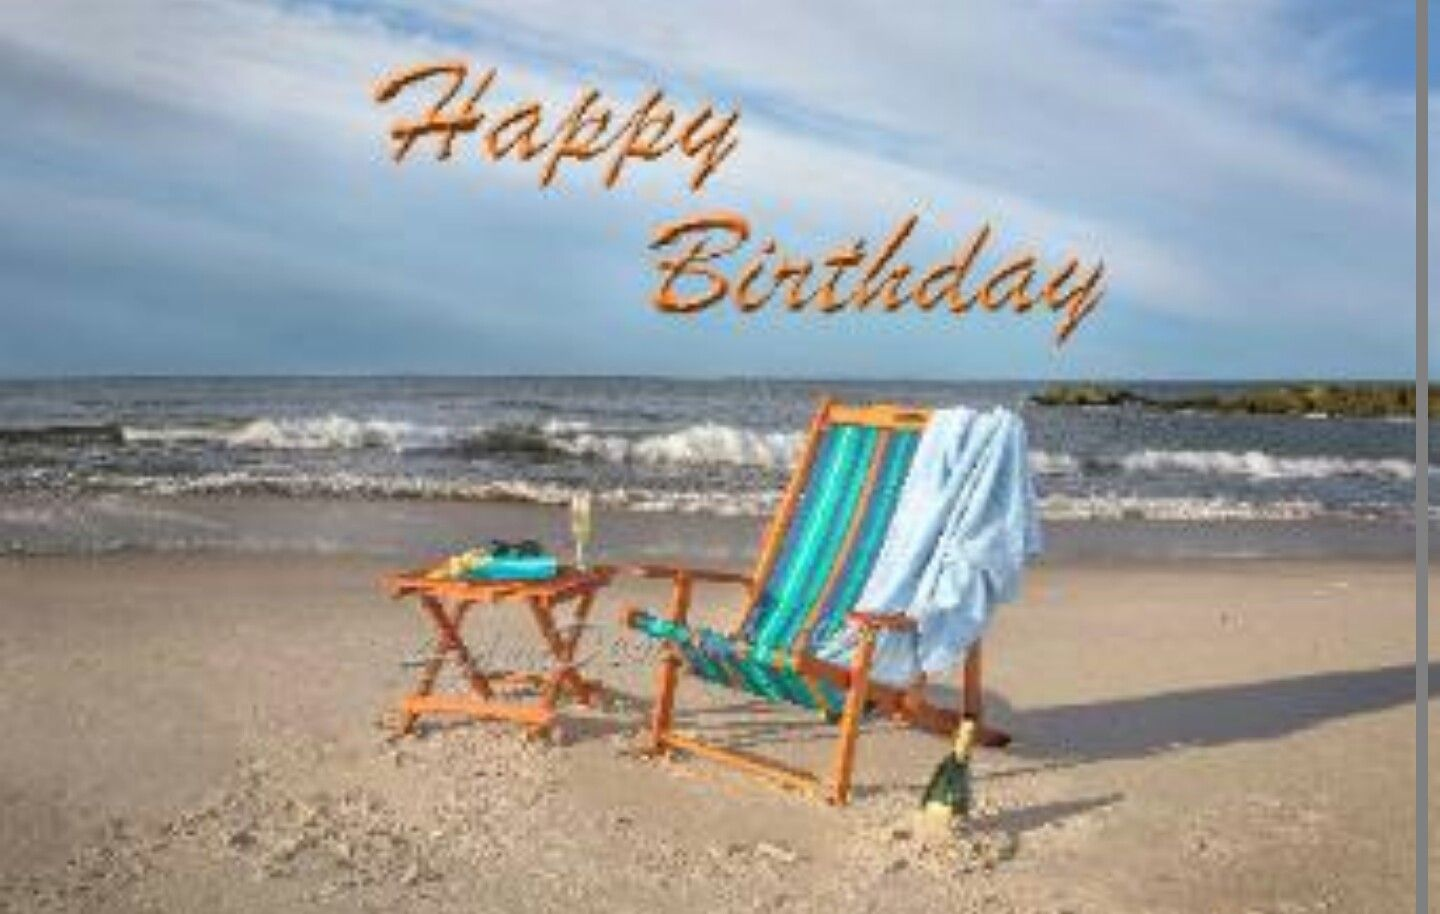 20 Beach Themed Birthday Wishes Pictures And Ideas On Meta Networks